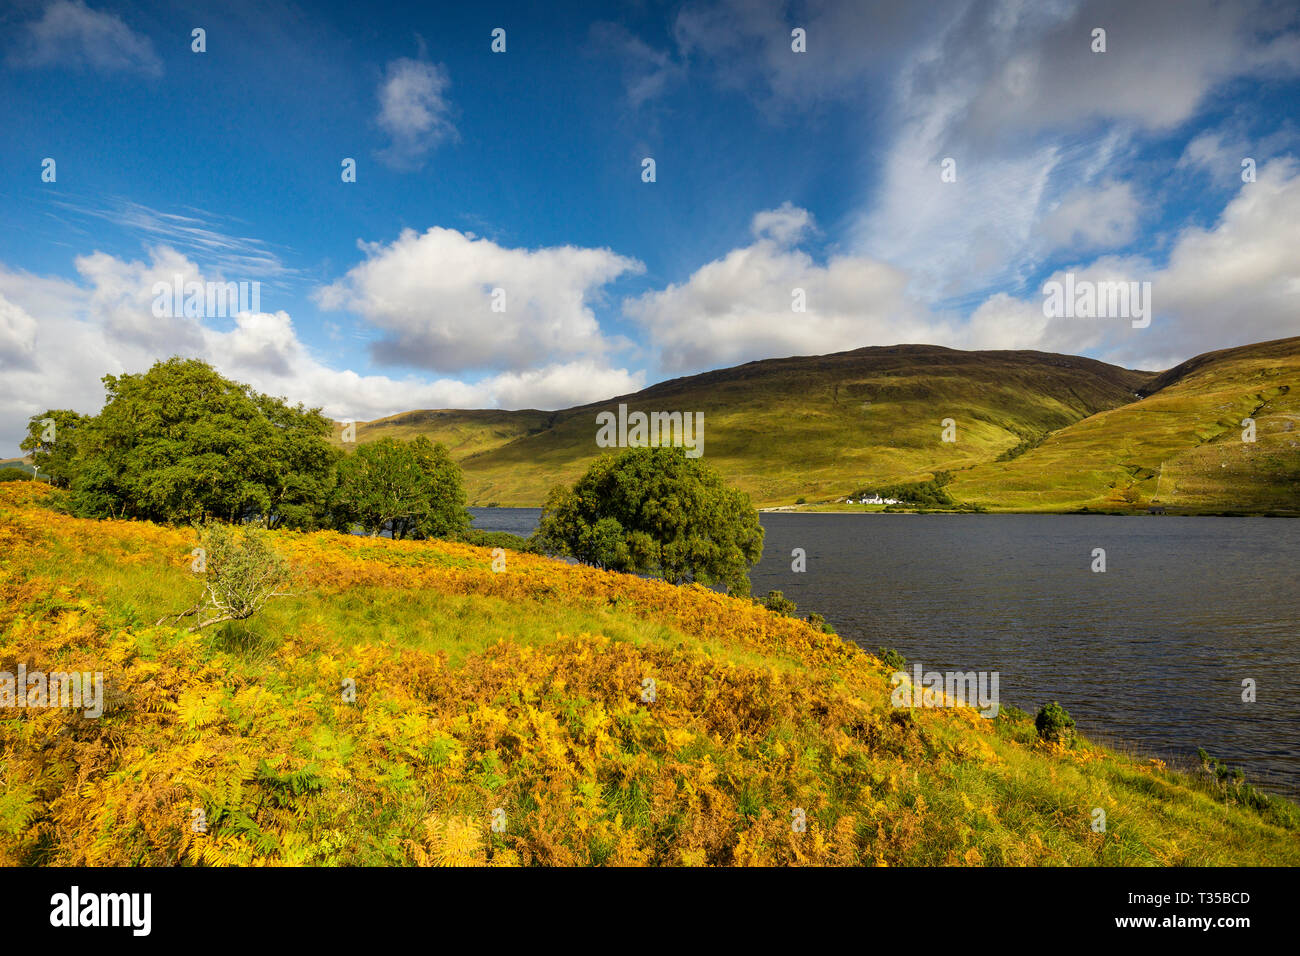 Autumn view taken on the shore of Loch More in Lairg in the Scottish Highlands. - Stock Image